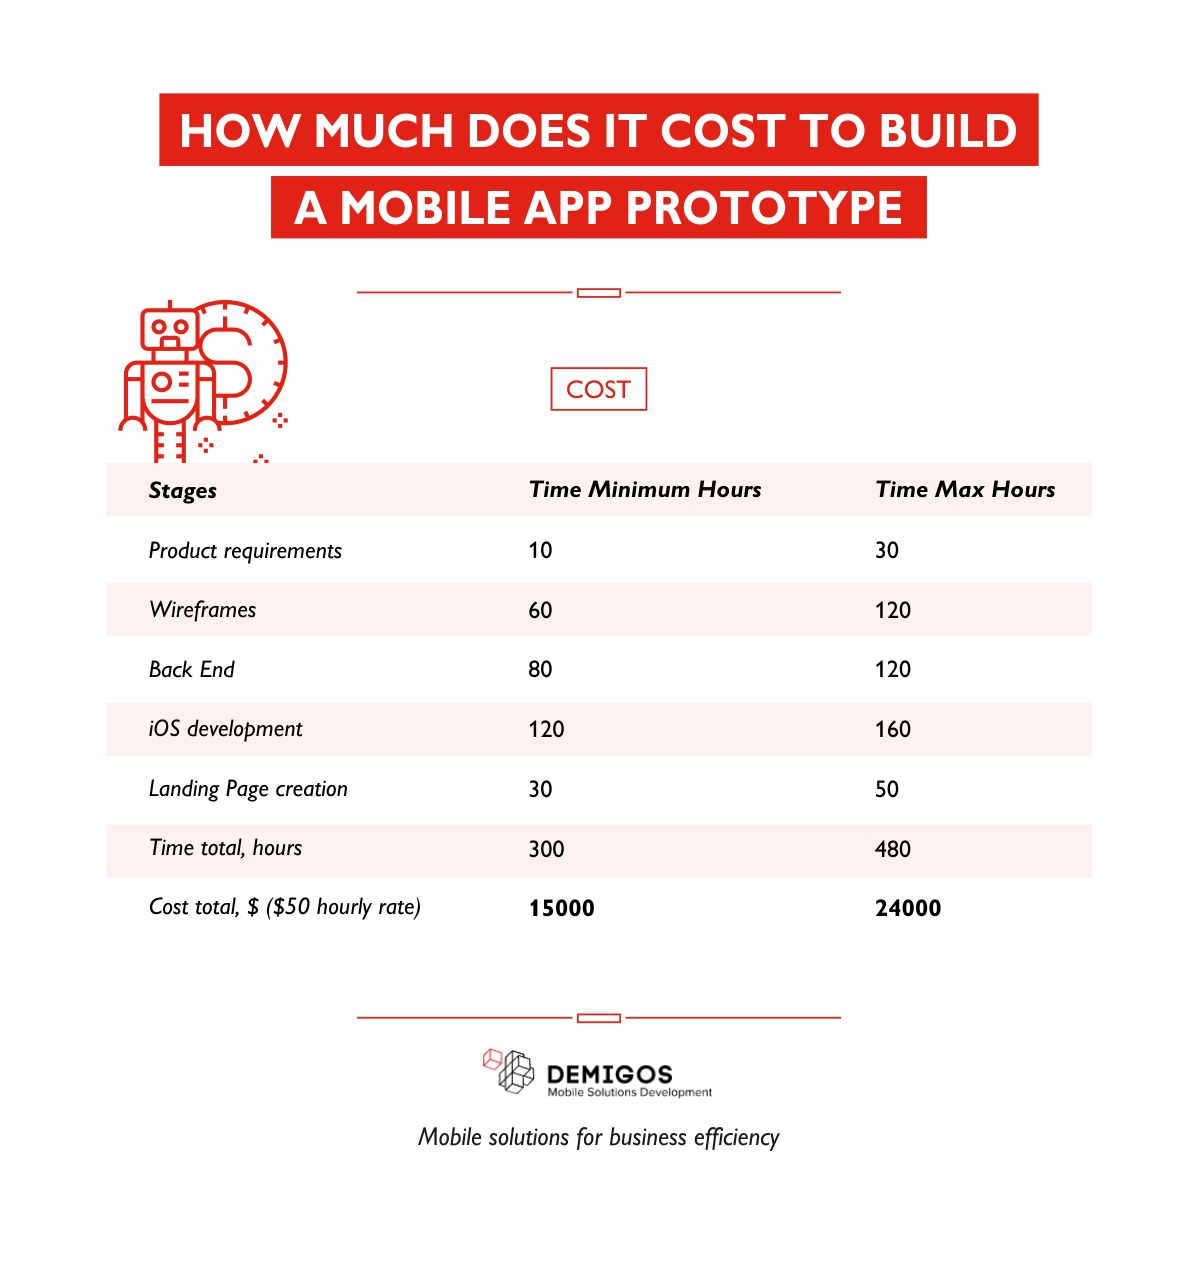 How Much Does it Cost to Build a Mobile App Prototype